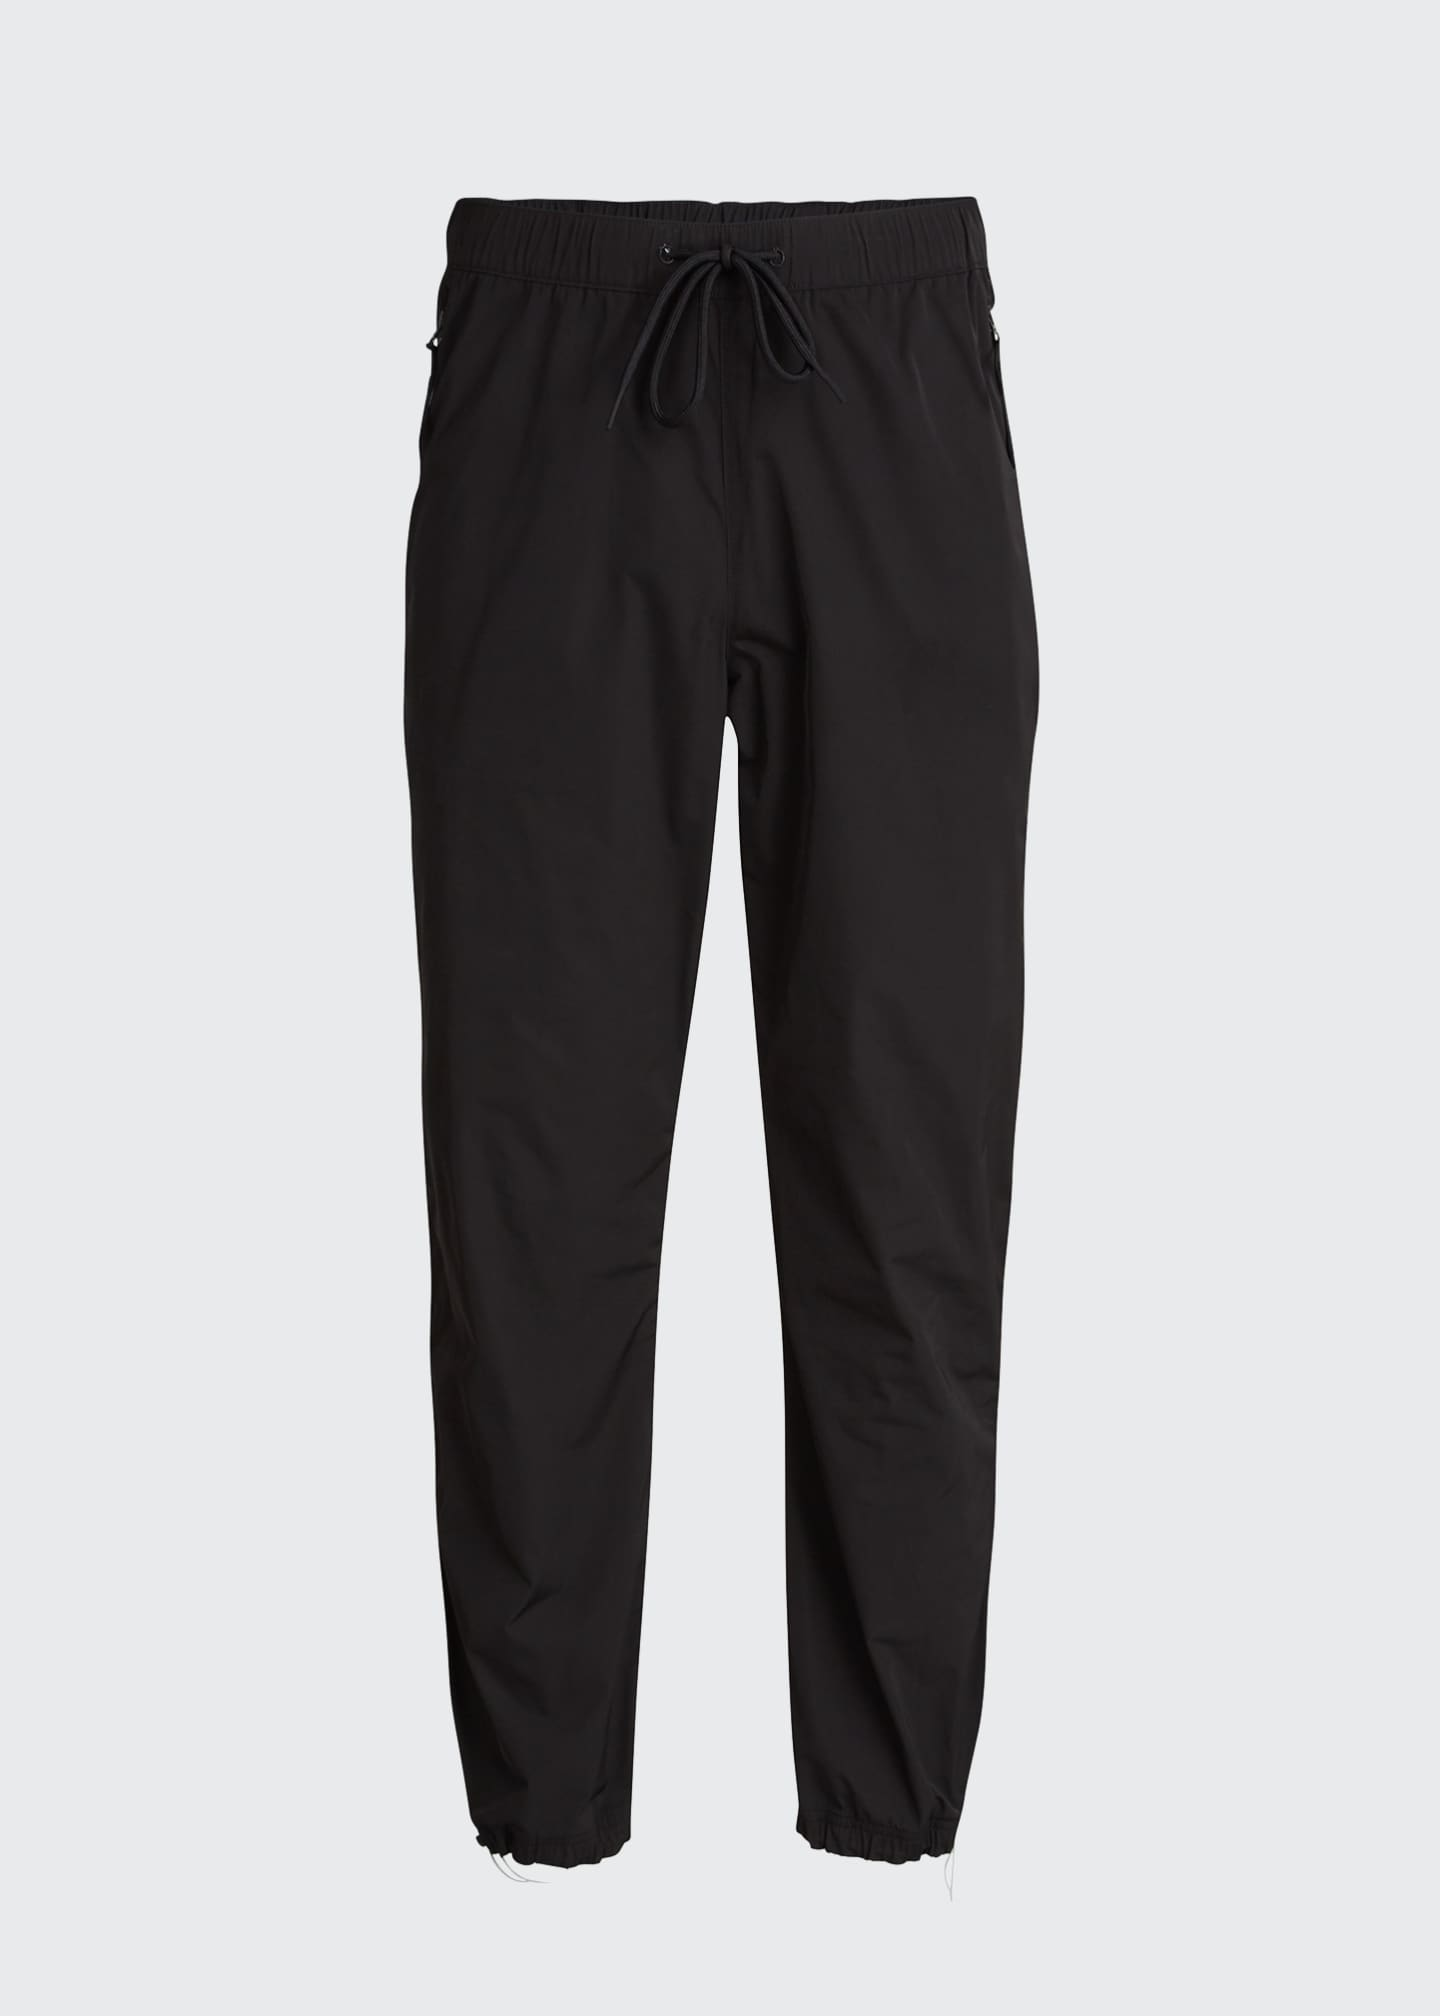 Image 5 of 5: Men's Meadow Trail Nylon Athletic Pants